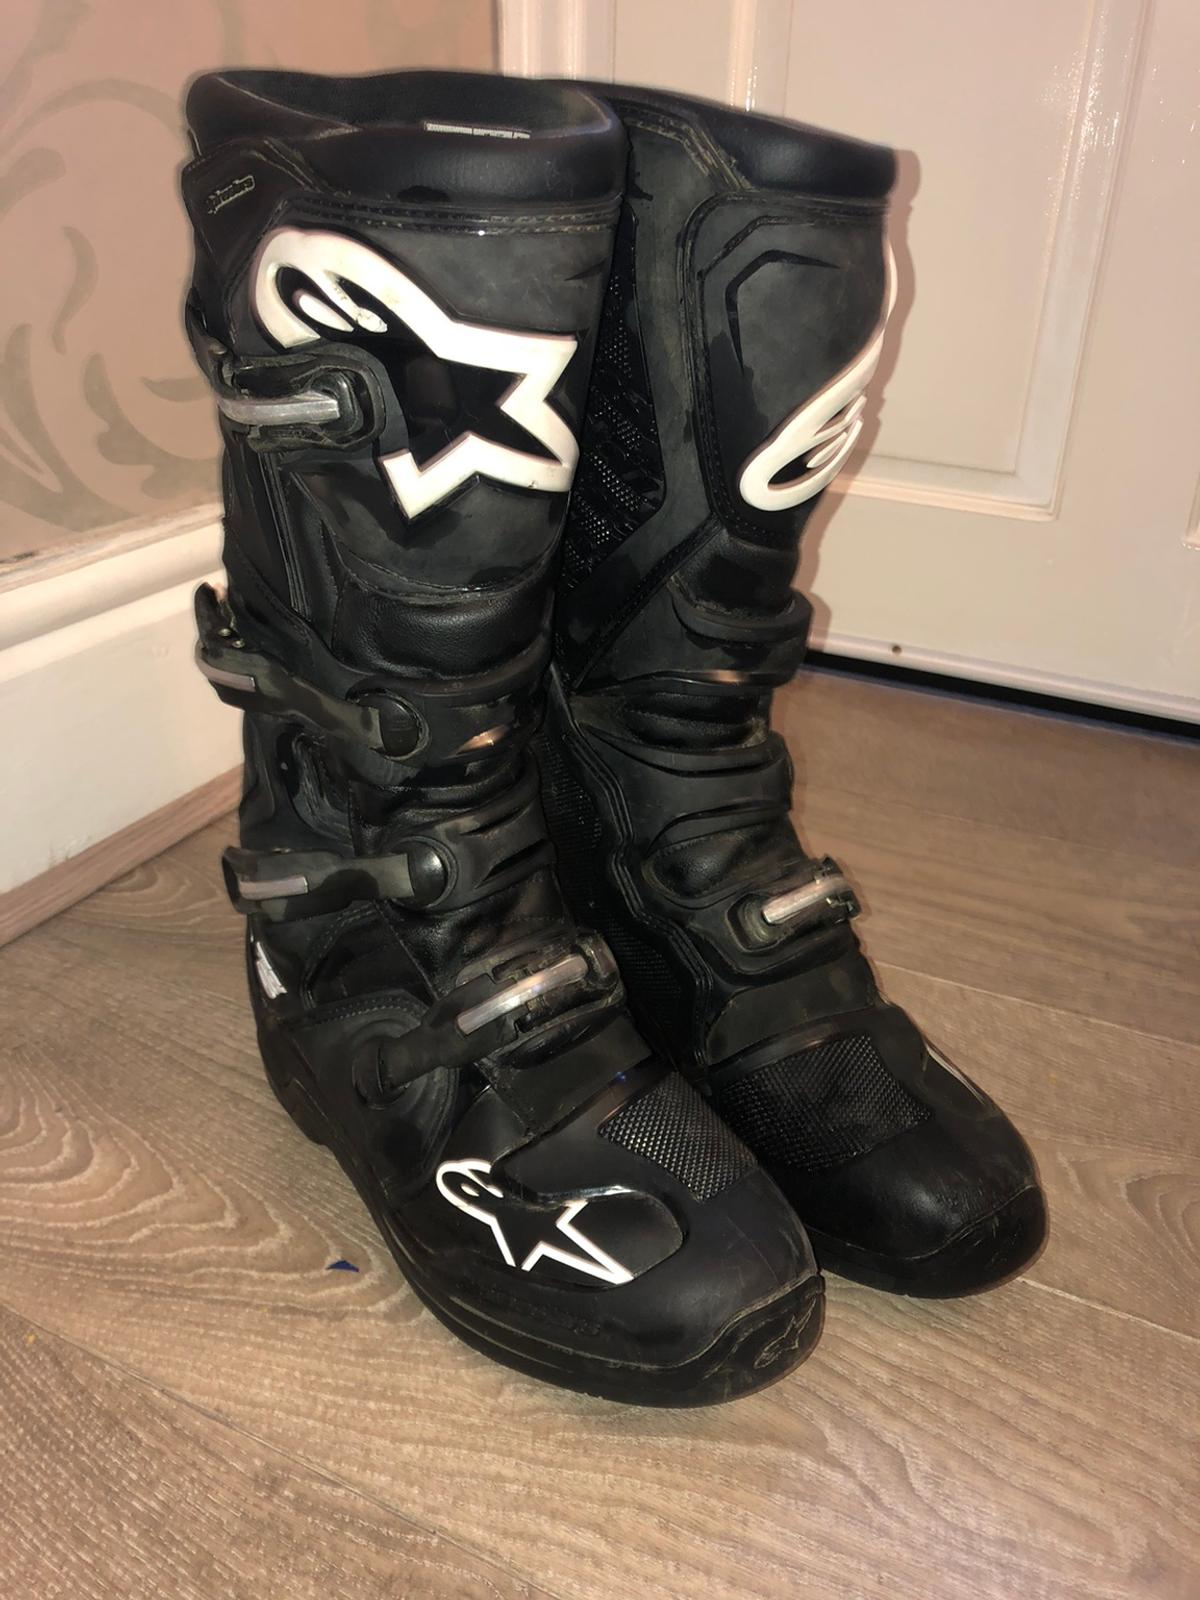 Tech5 motocross boots size 10 like new only worn a few times £100